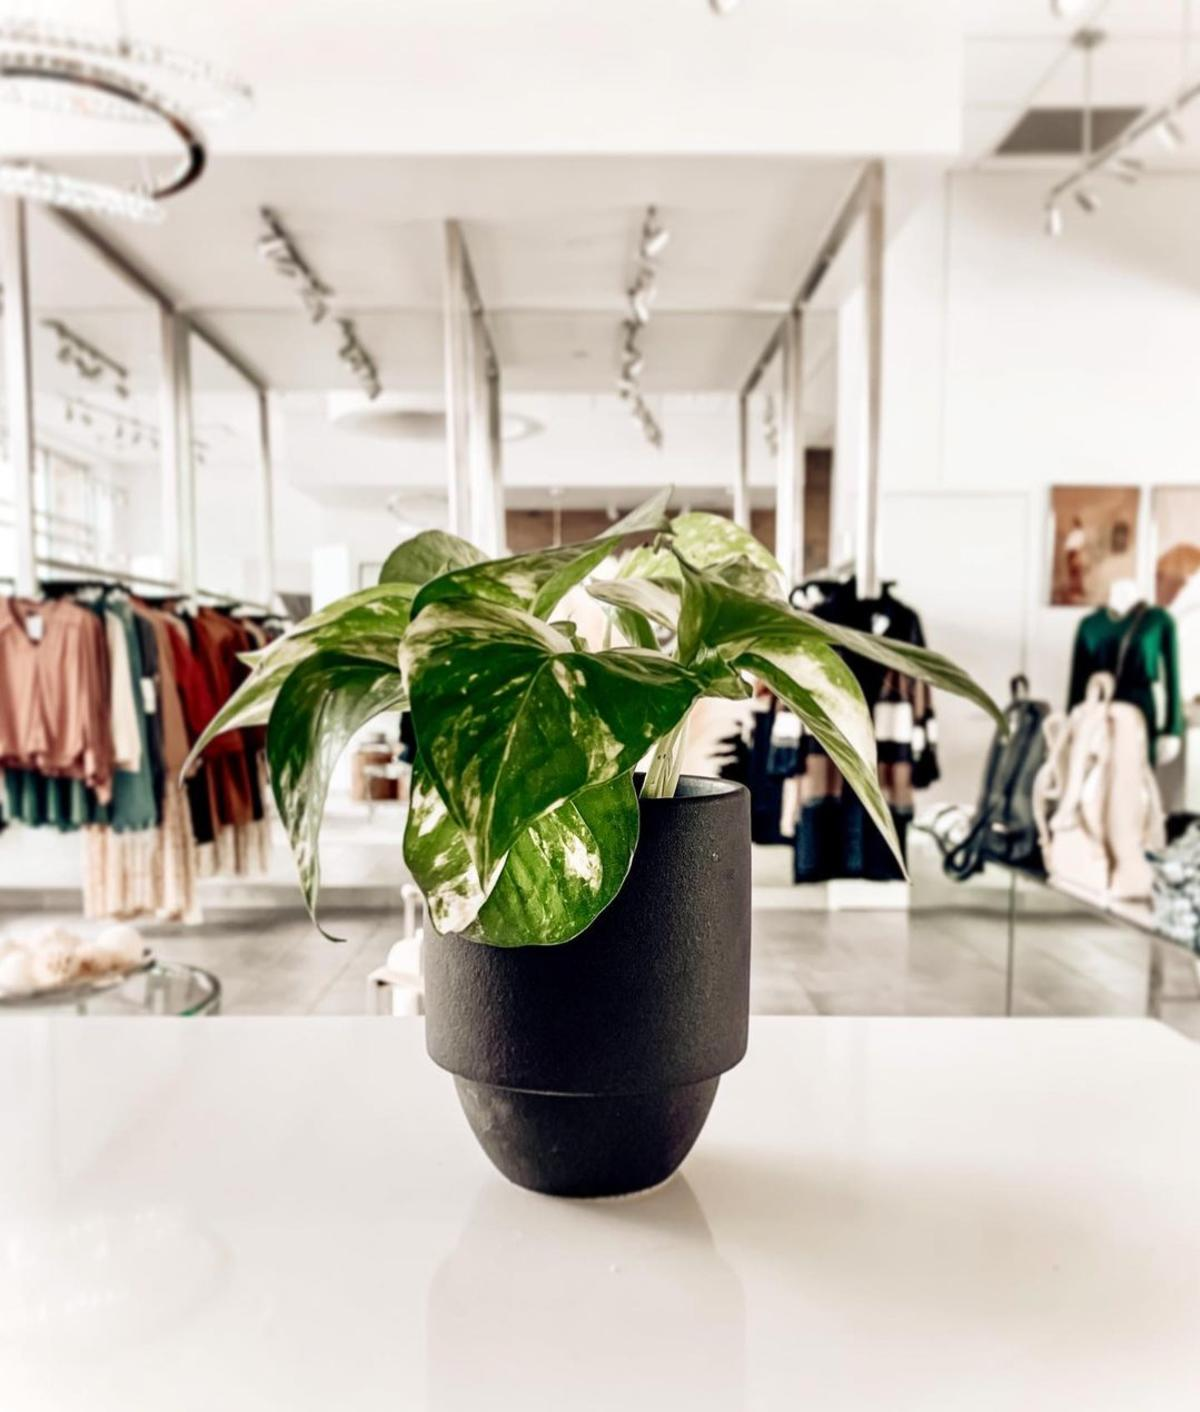 Plant sitting on the counter with clothing racks in the background at OMONI Boutique in Bay City.